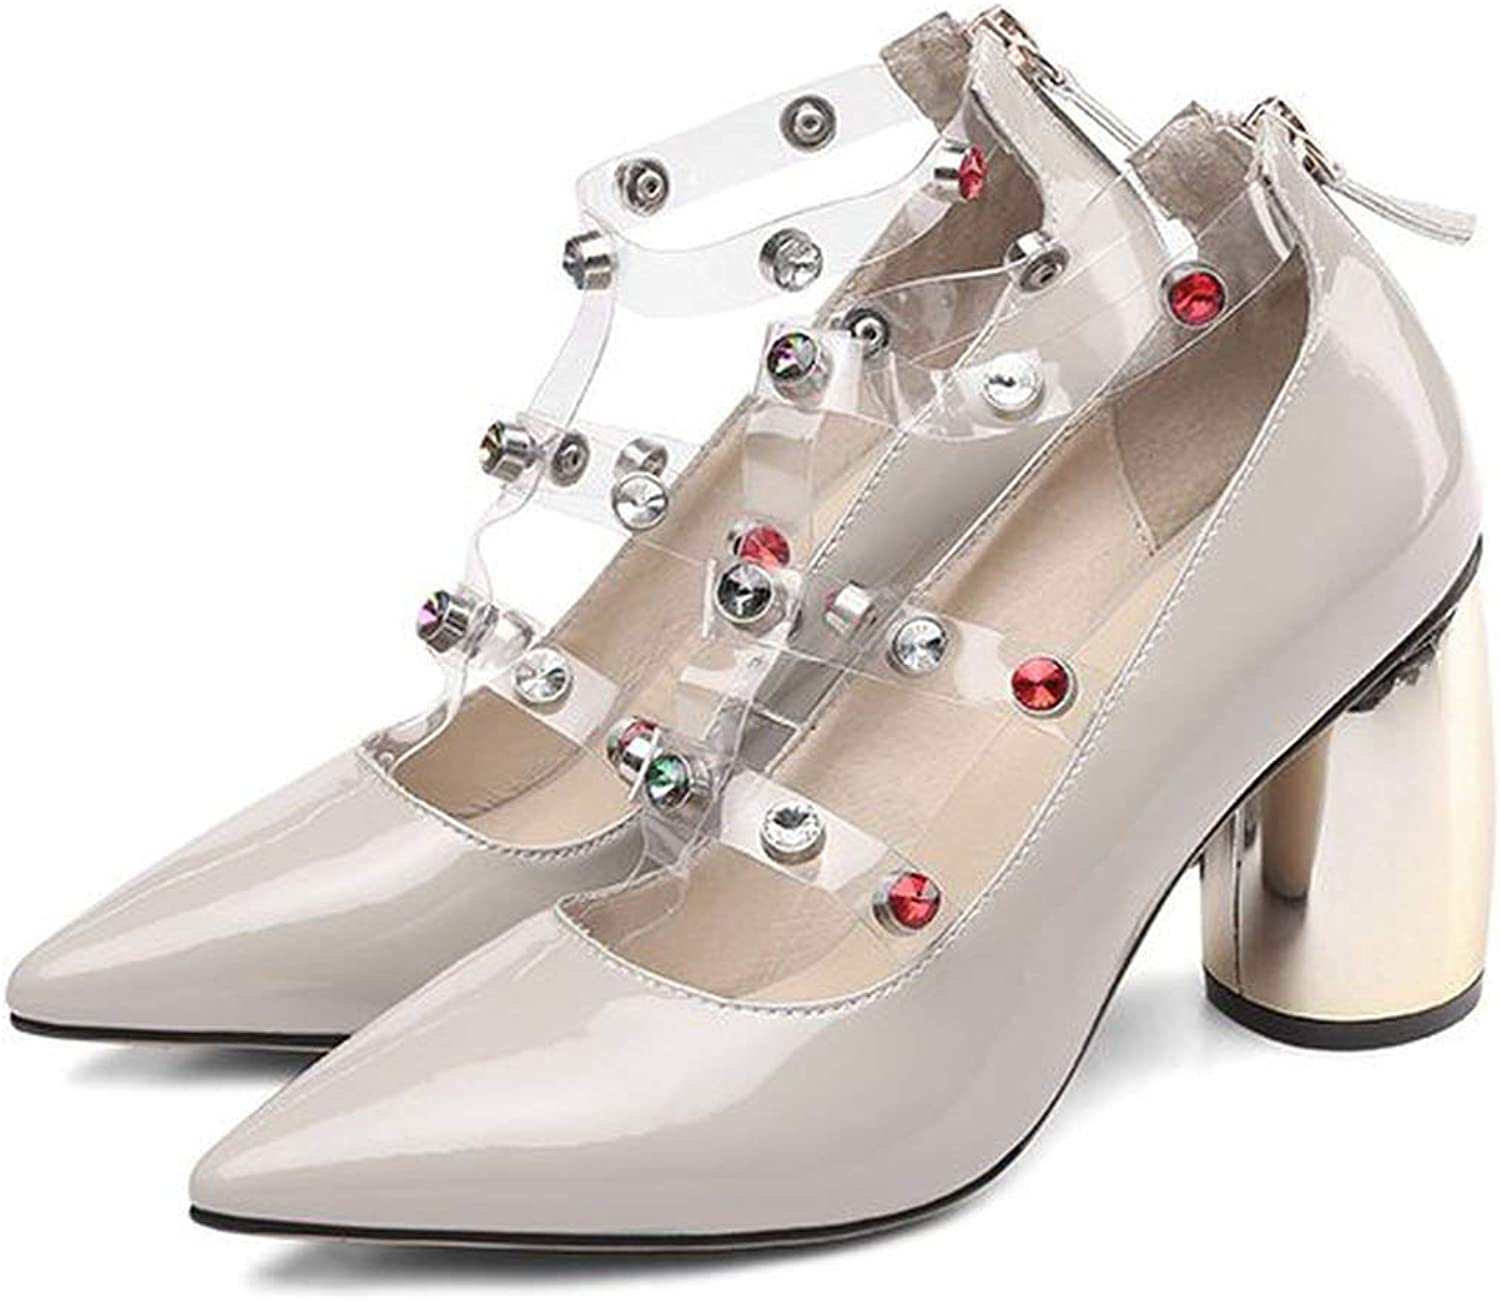 Rivets Leather Sexy High Heels Party Women shoes Women High Heel shoes Women Heels